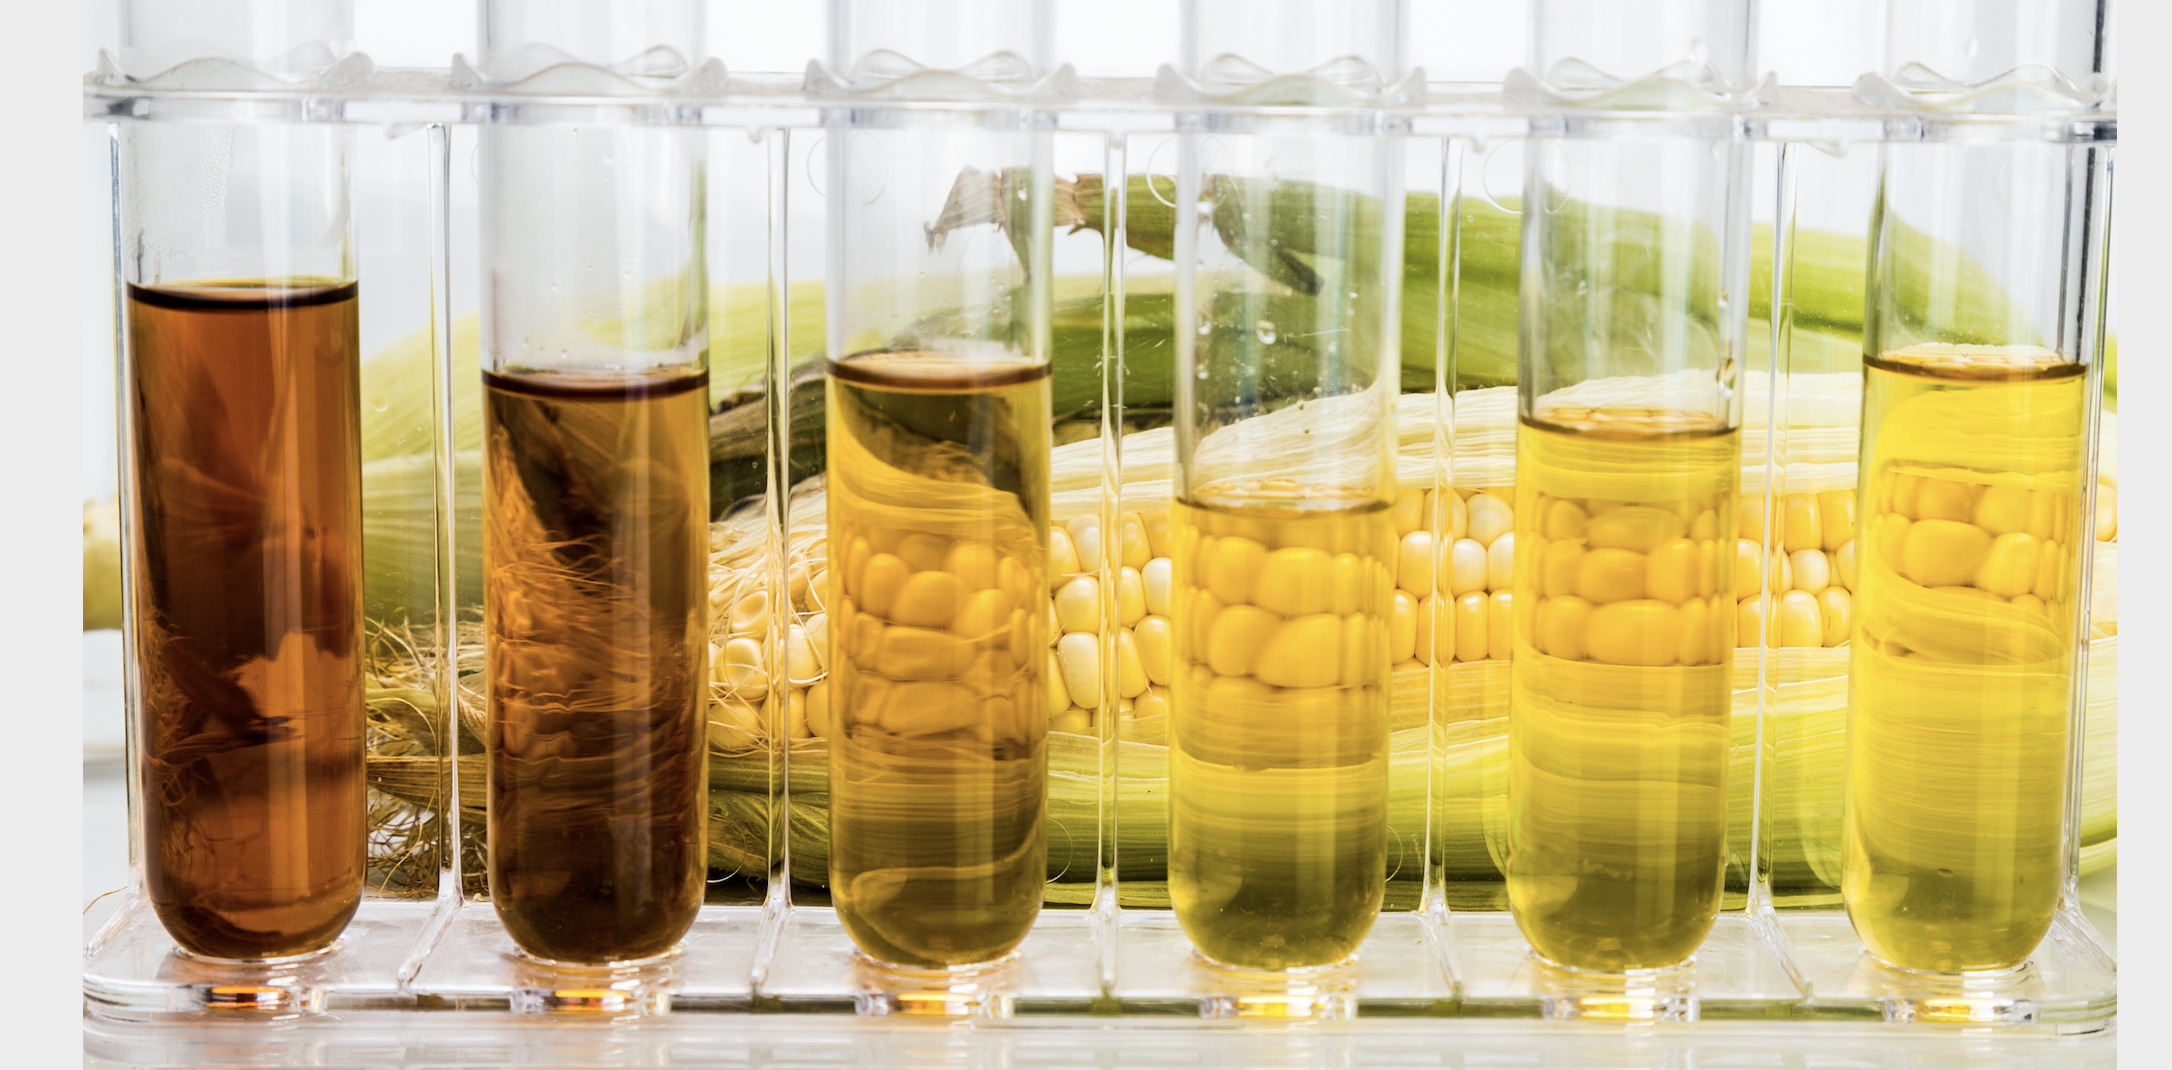 Distiller's Corn Oil (DCO) Sees Second Straight Week of Higher Production